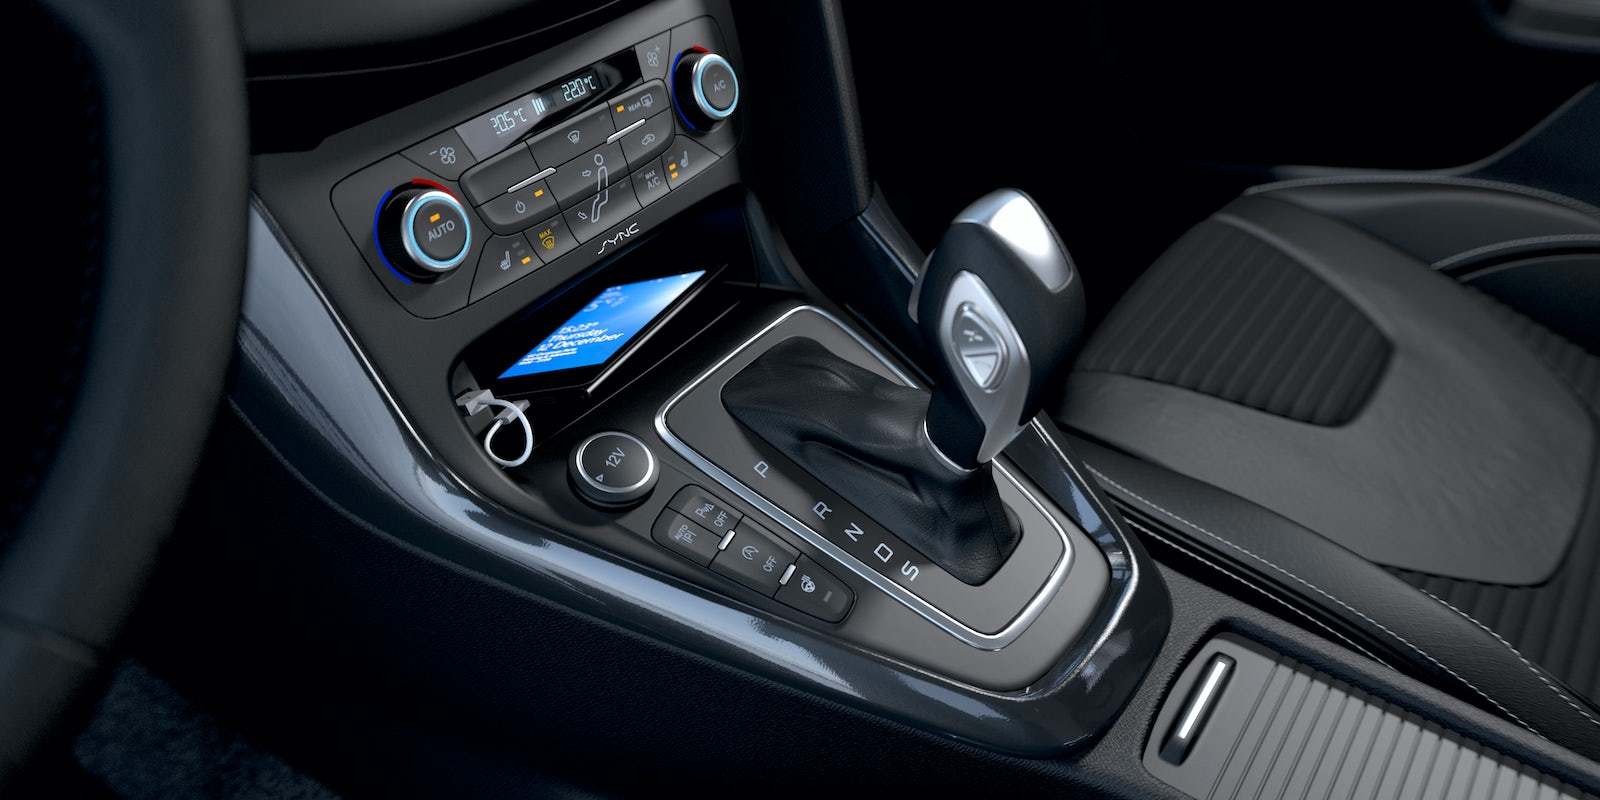 ford focus interior and infotainment carwow. Black Bedroom Furniture Sets. Home Design Ideas